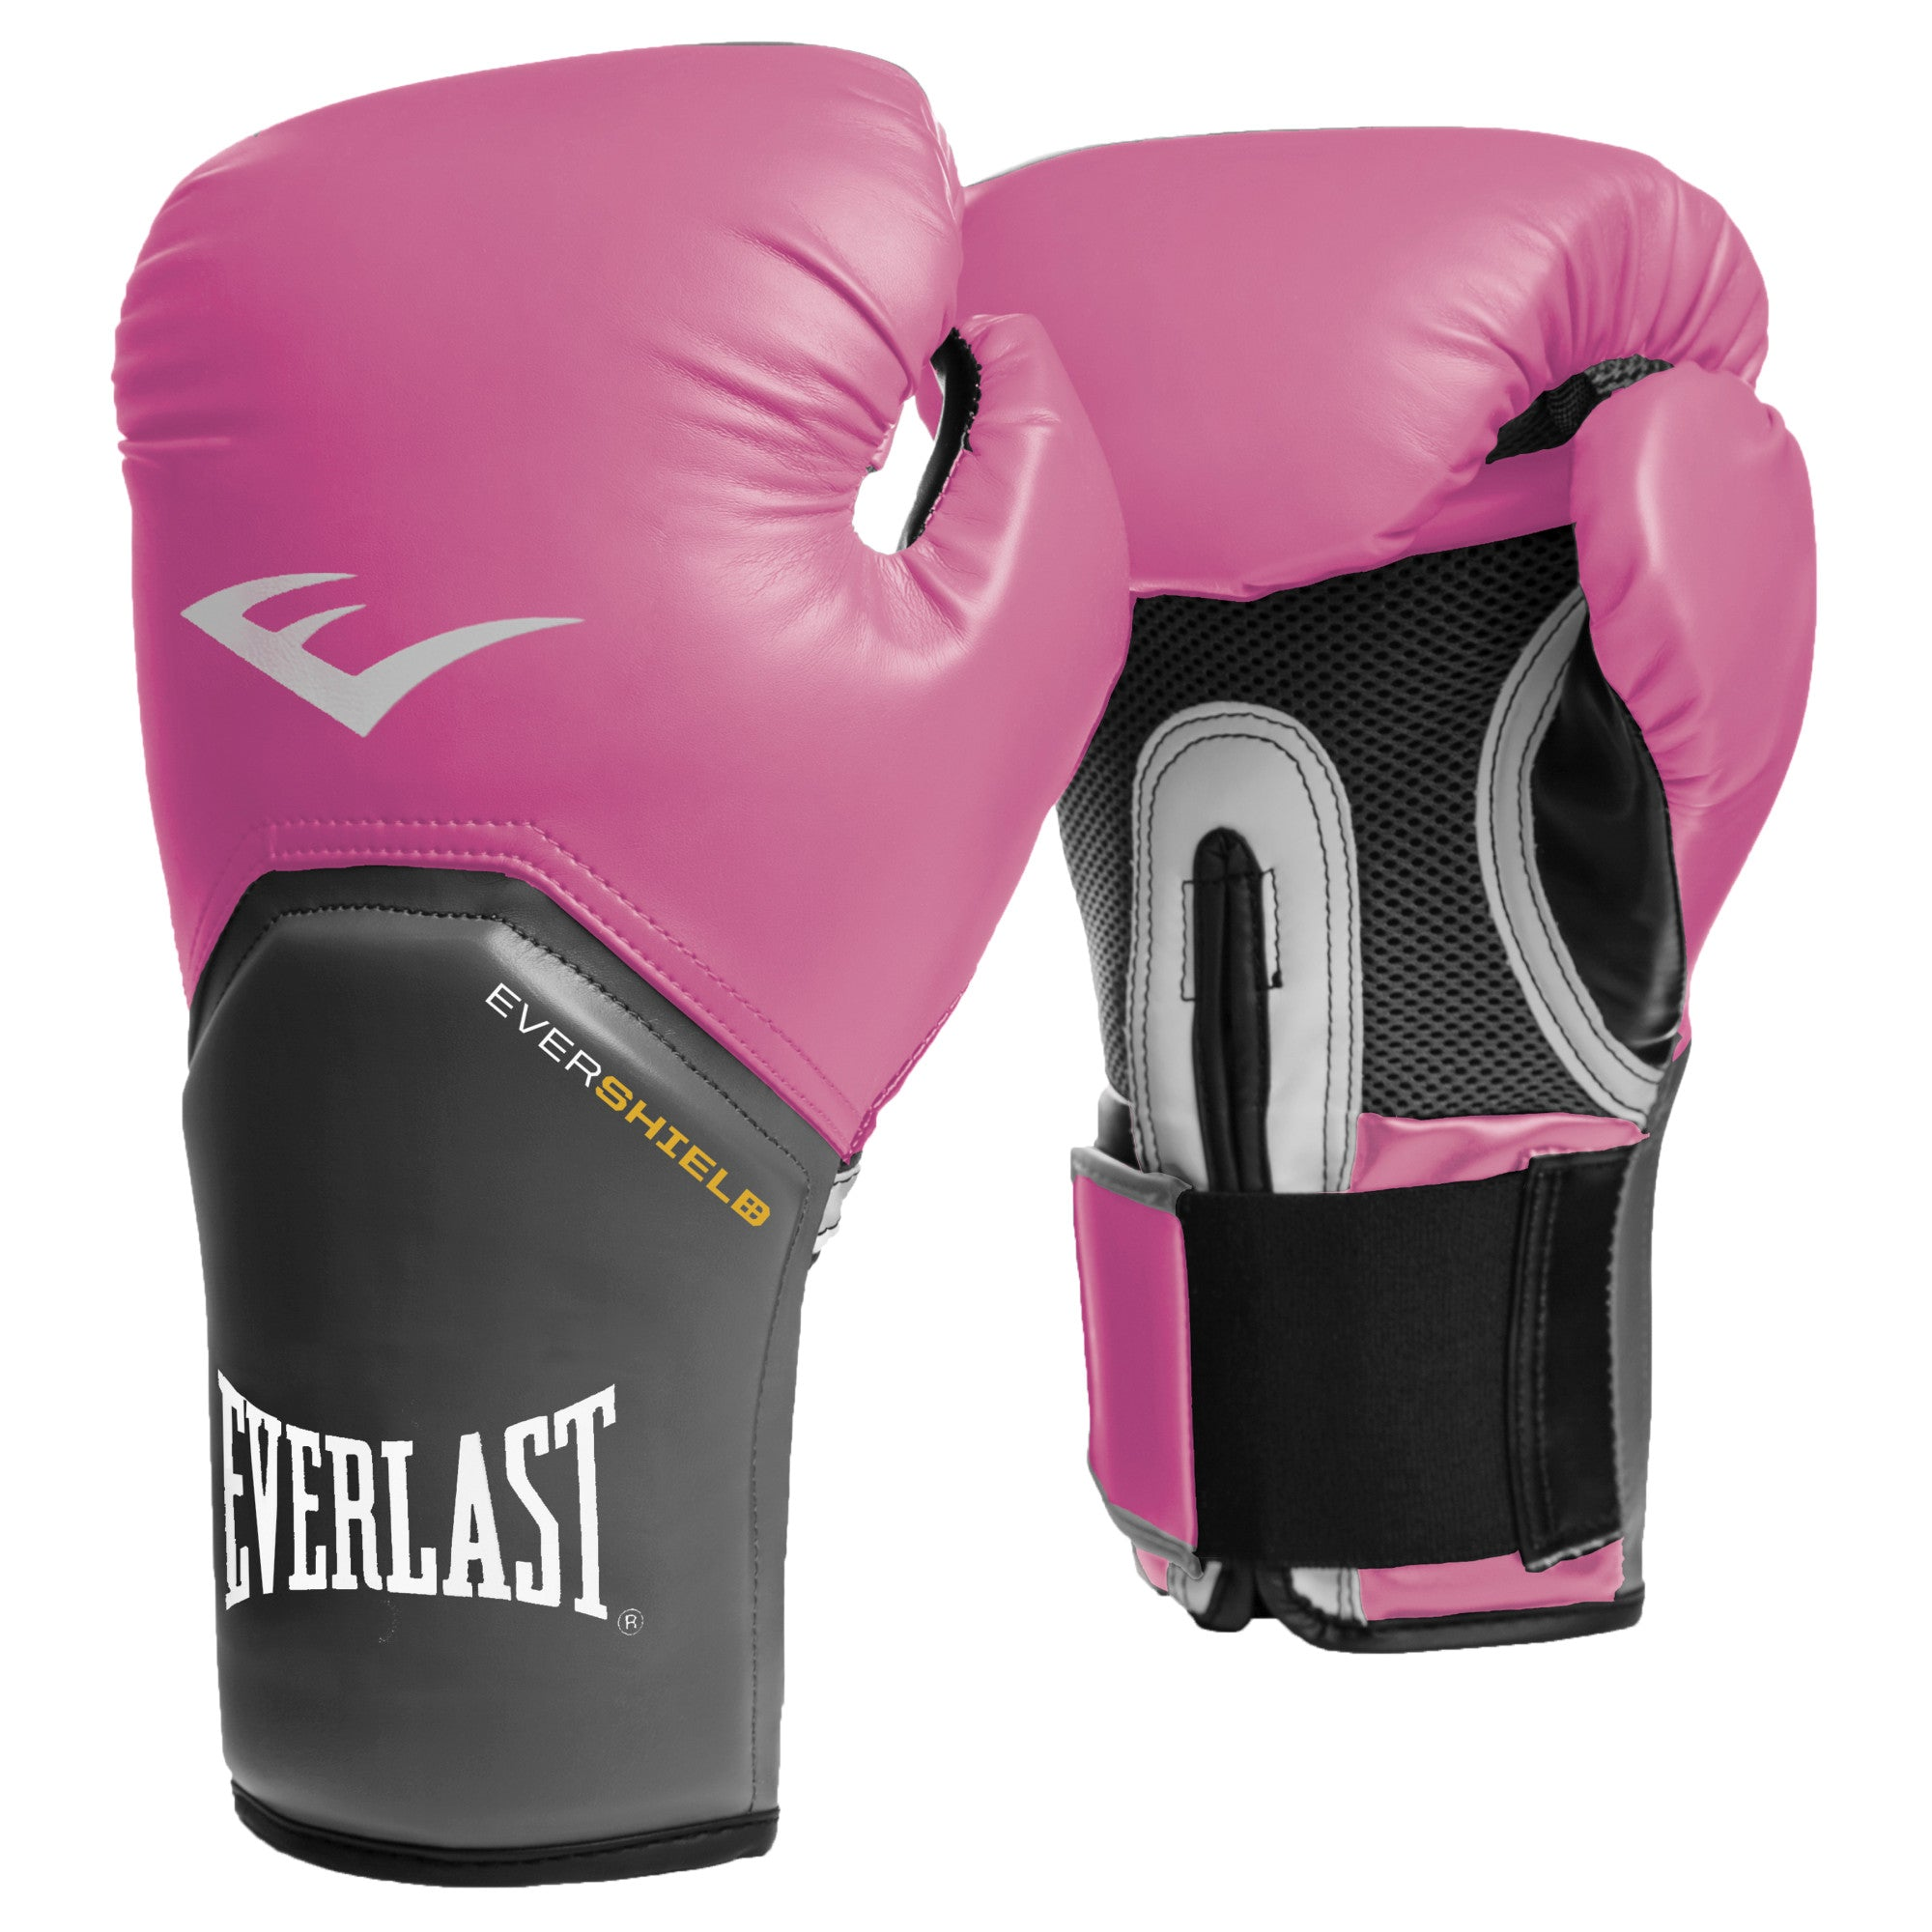 Everlast Pro Style Elite Training Gloves Pink